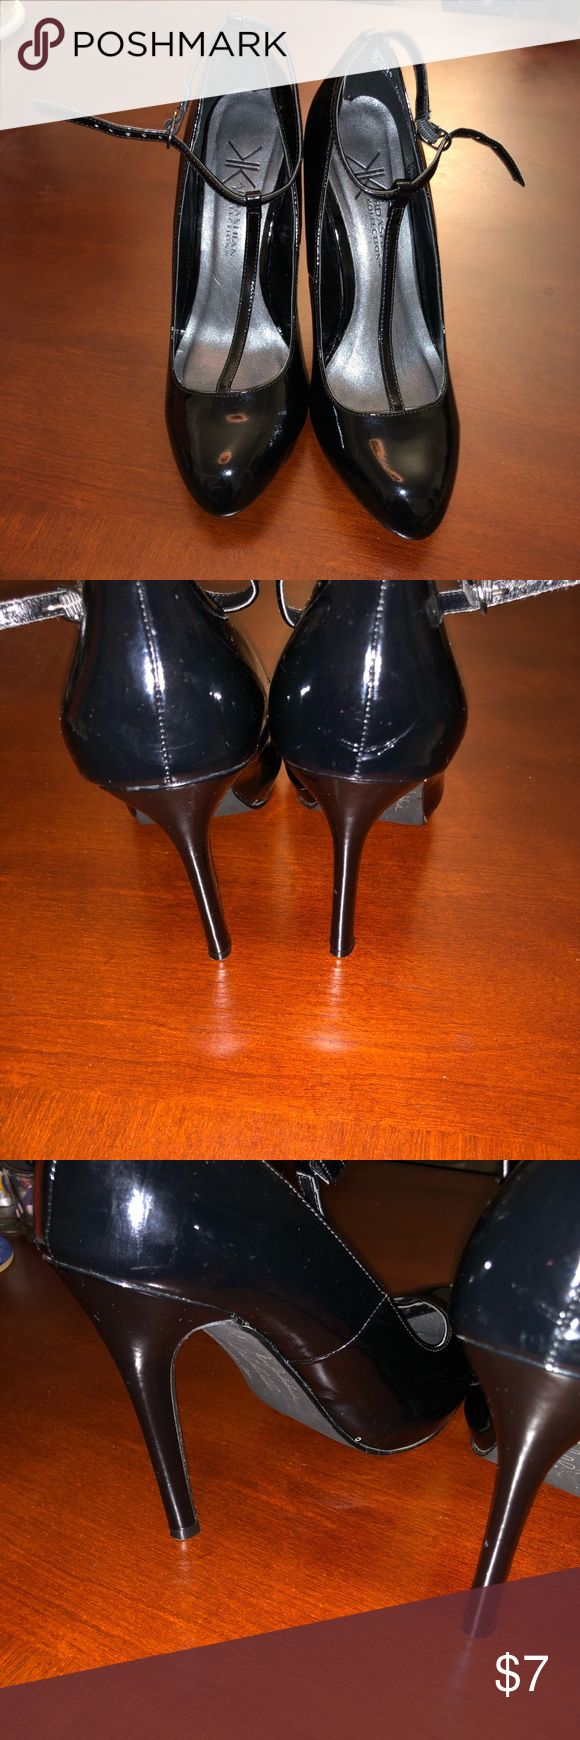 BLACK HIGH HEELS! KIM K COLLECTION! DEAL! 9.5M Get these high heels for only $7! From the KIM KARDASHIAN collection. Color Black, size 9.5M. only worn a few time. See pics.    My wife and I are cleaning out our closet and selling stuff cheap. Kim kardashian collection Shoes Heels